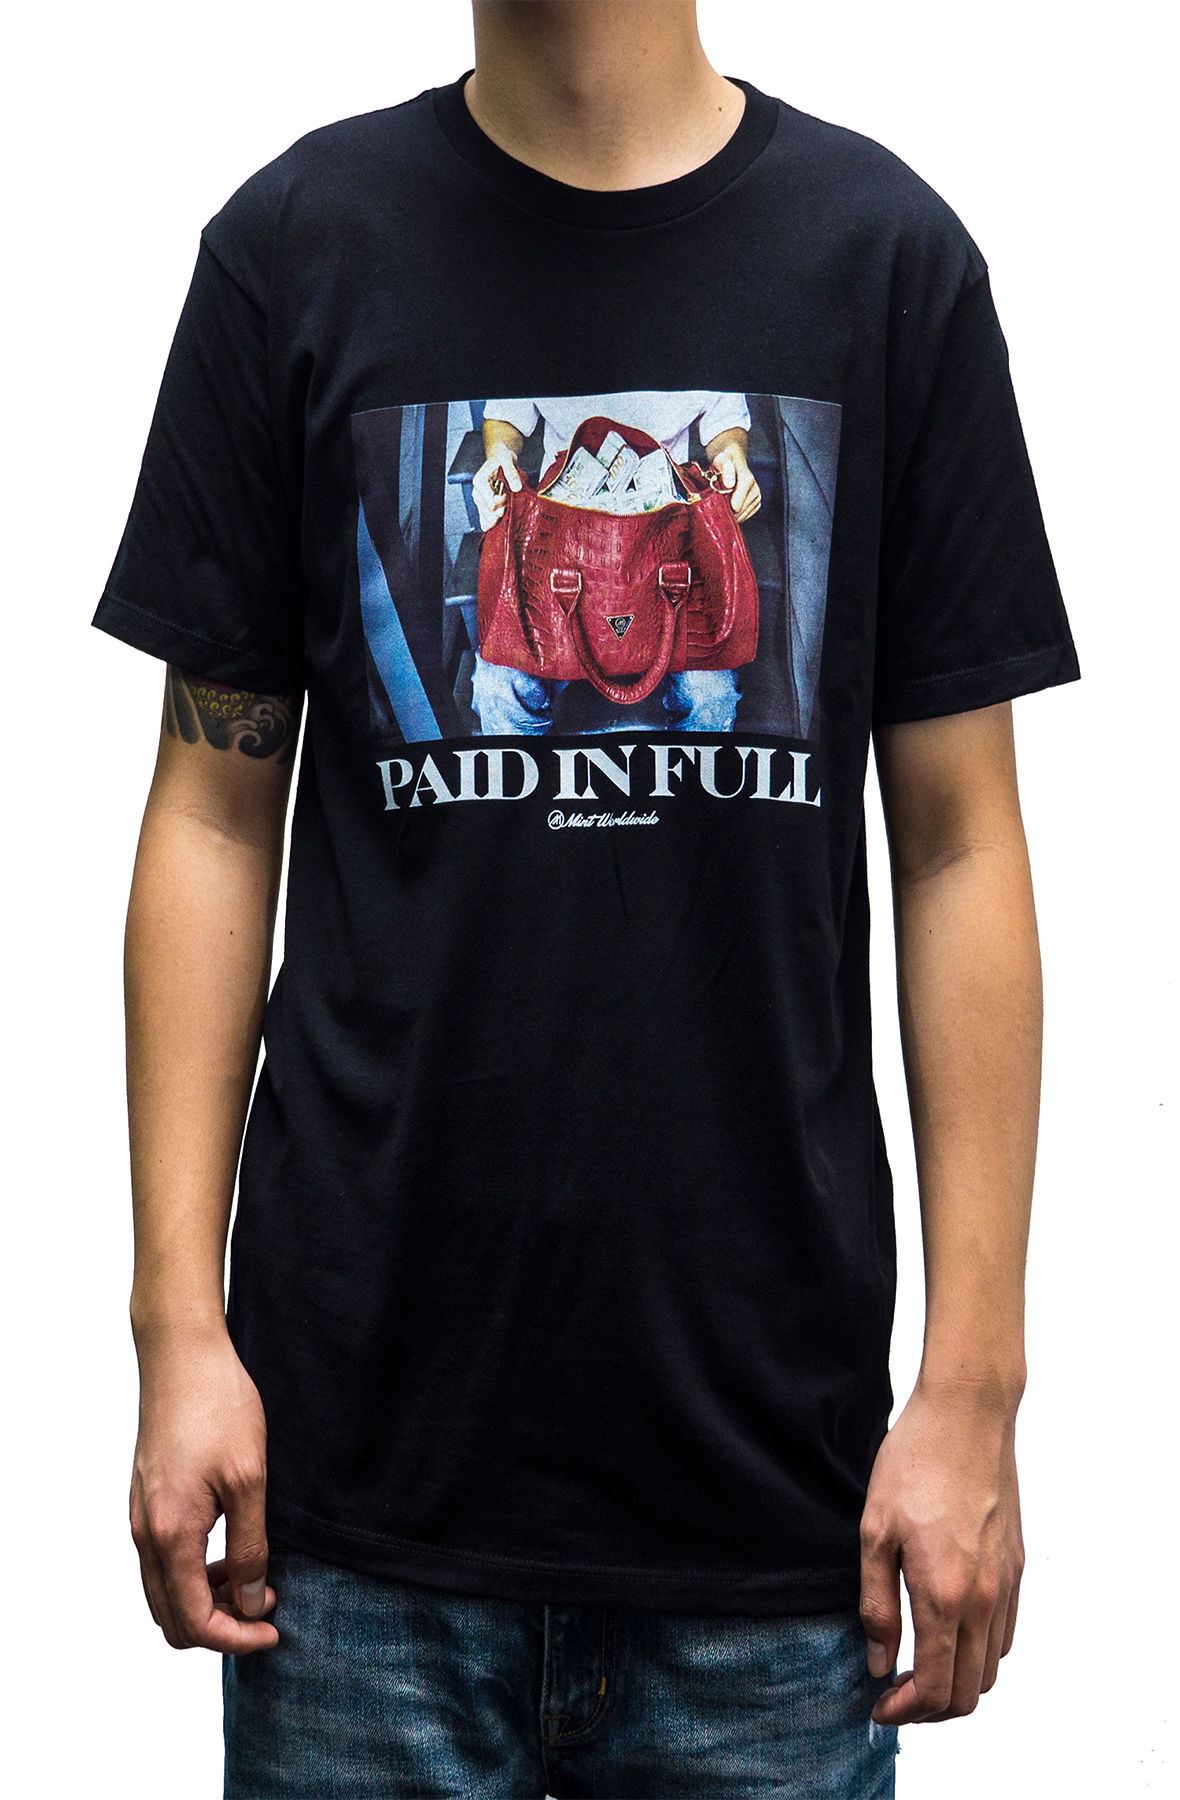 Mint Paid In Full Tee